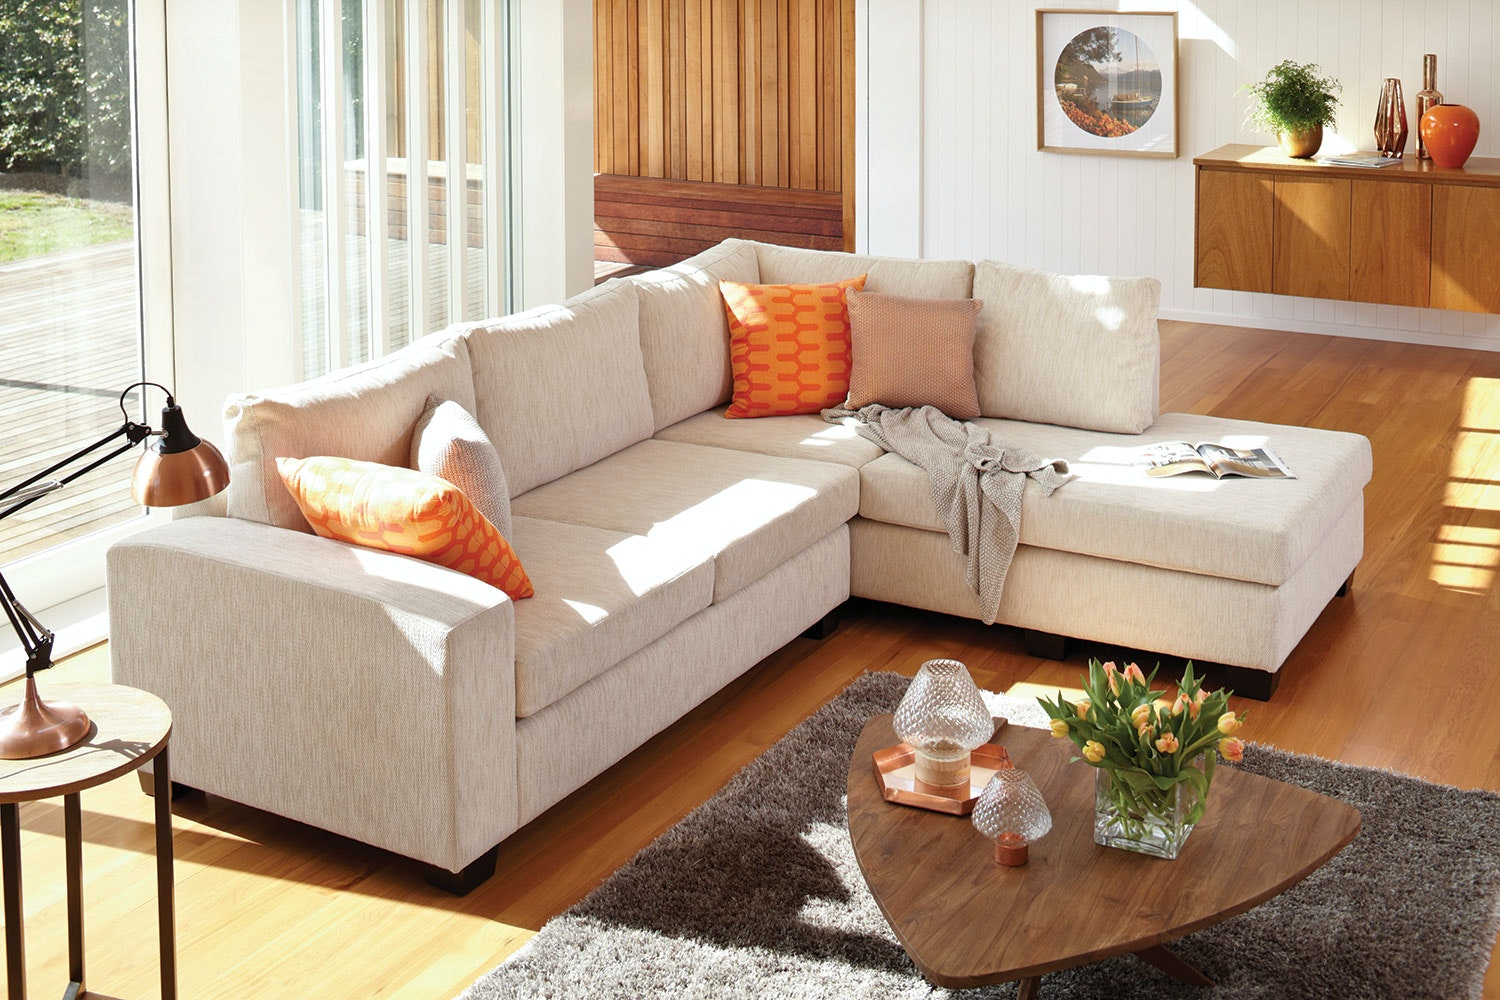 Weymouth 4-Seater Fabric Chaise Sofa